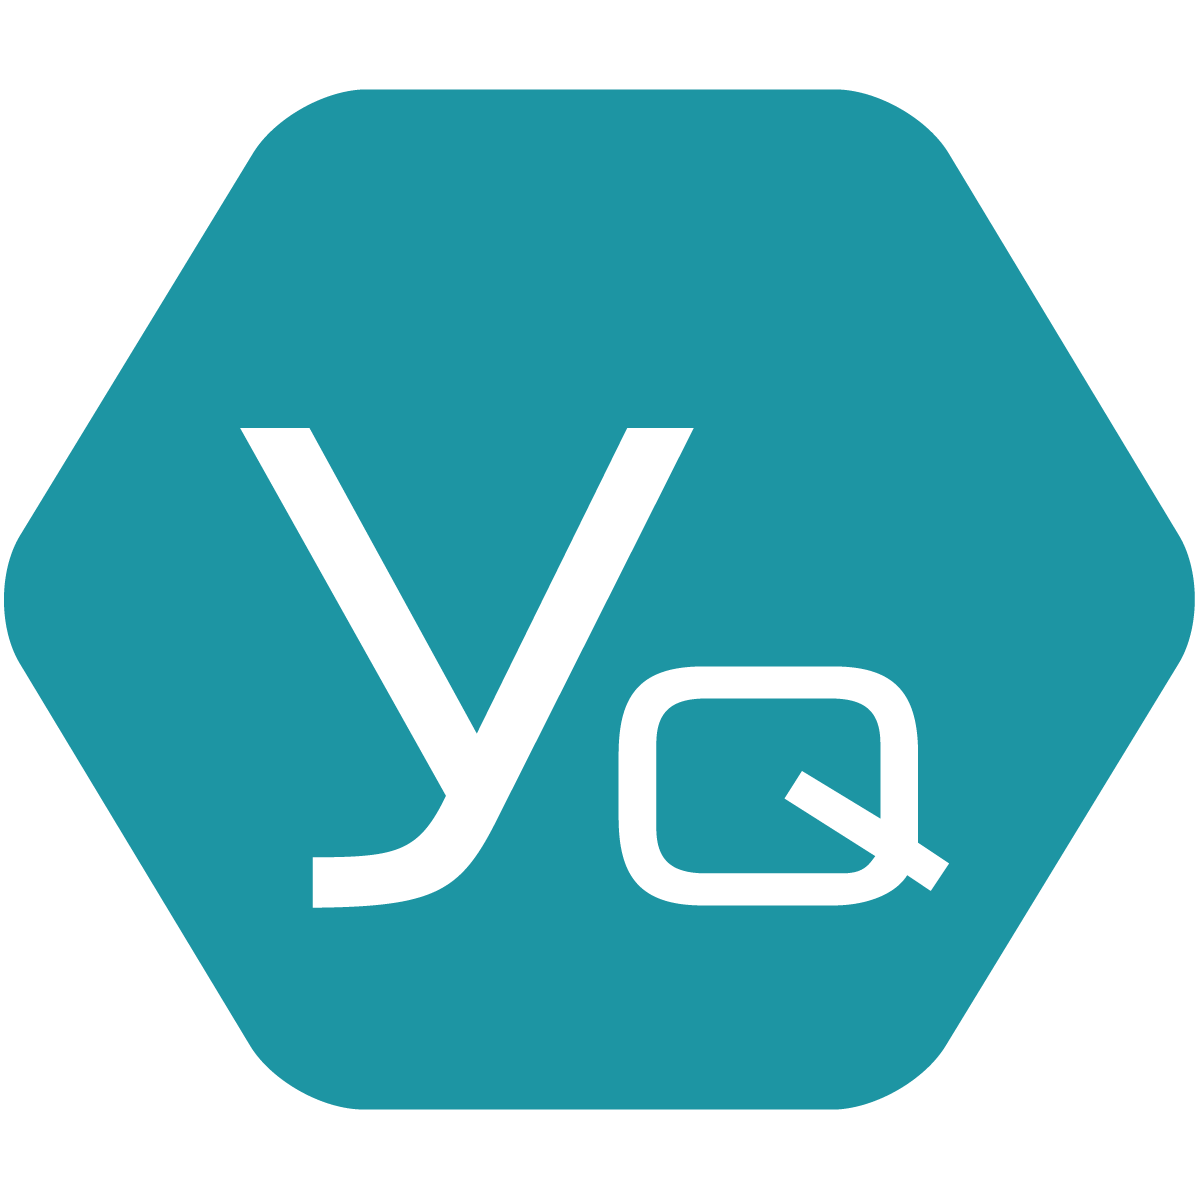 Hire Shopify Experts to integrate Youneeq A.I. Personalization app into a Shopify store